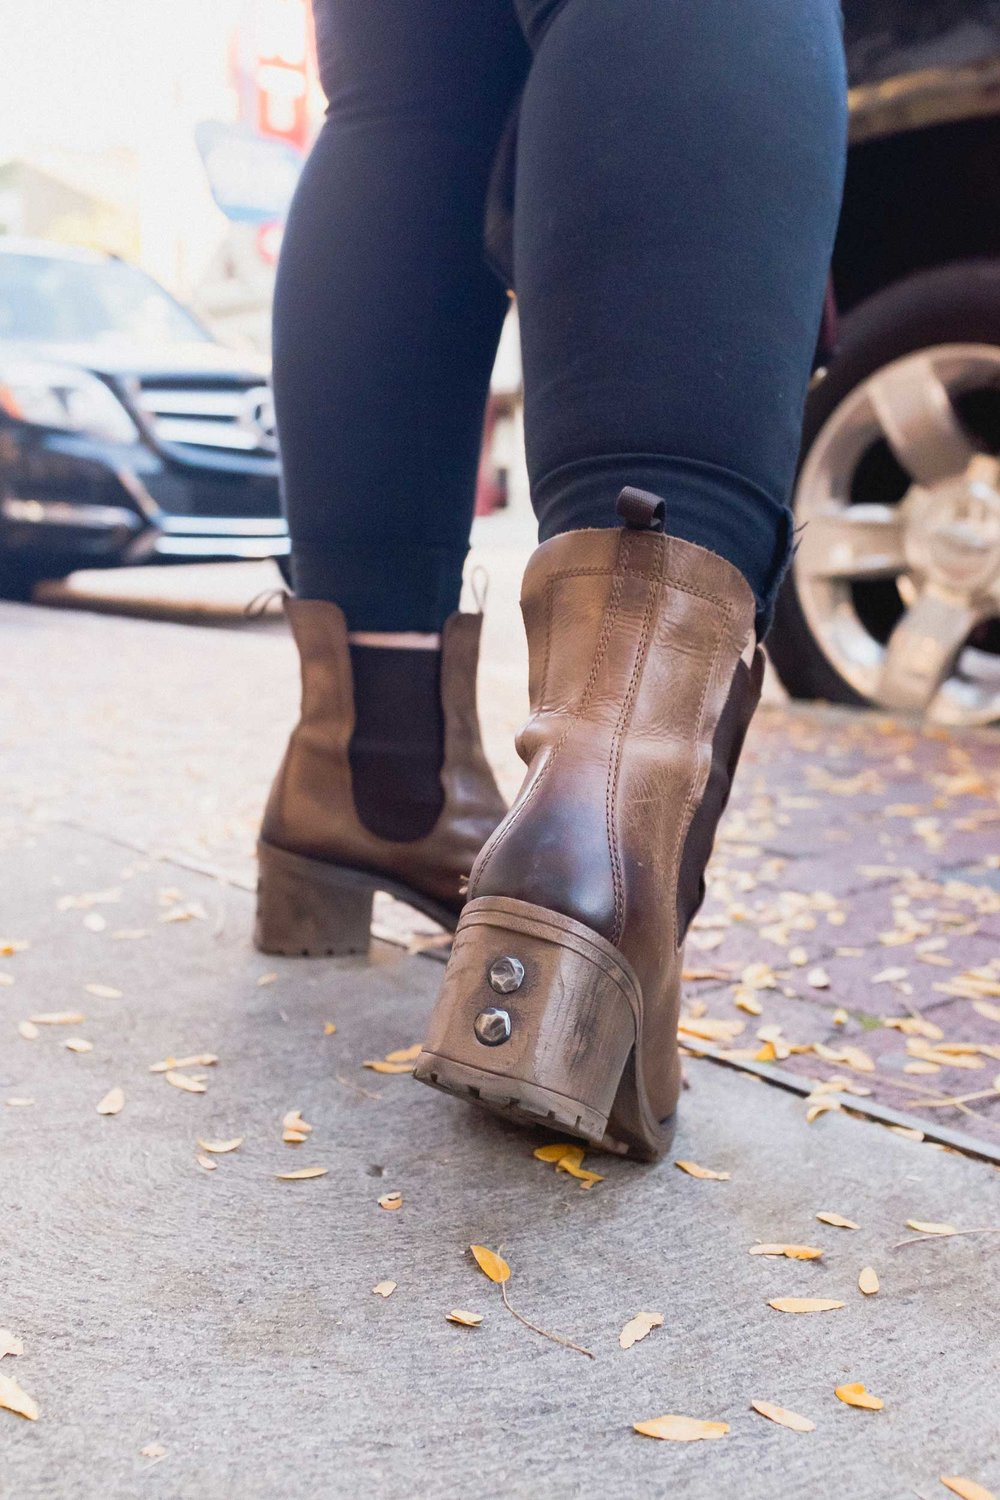 Fall boots courtesy of Frye London.